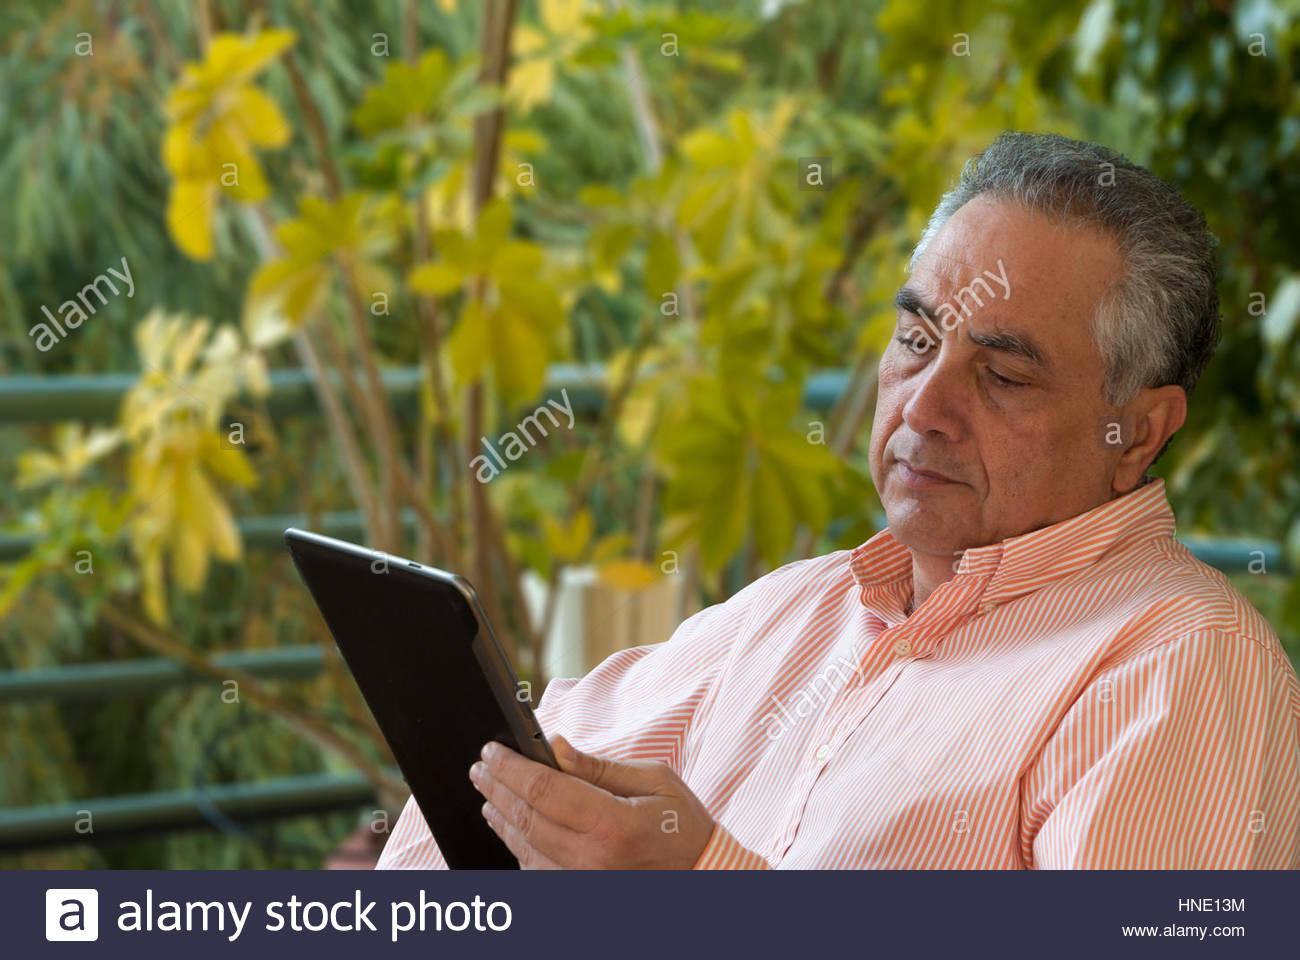 Man sitting in his balcony and reading from a tablet - Stock Image